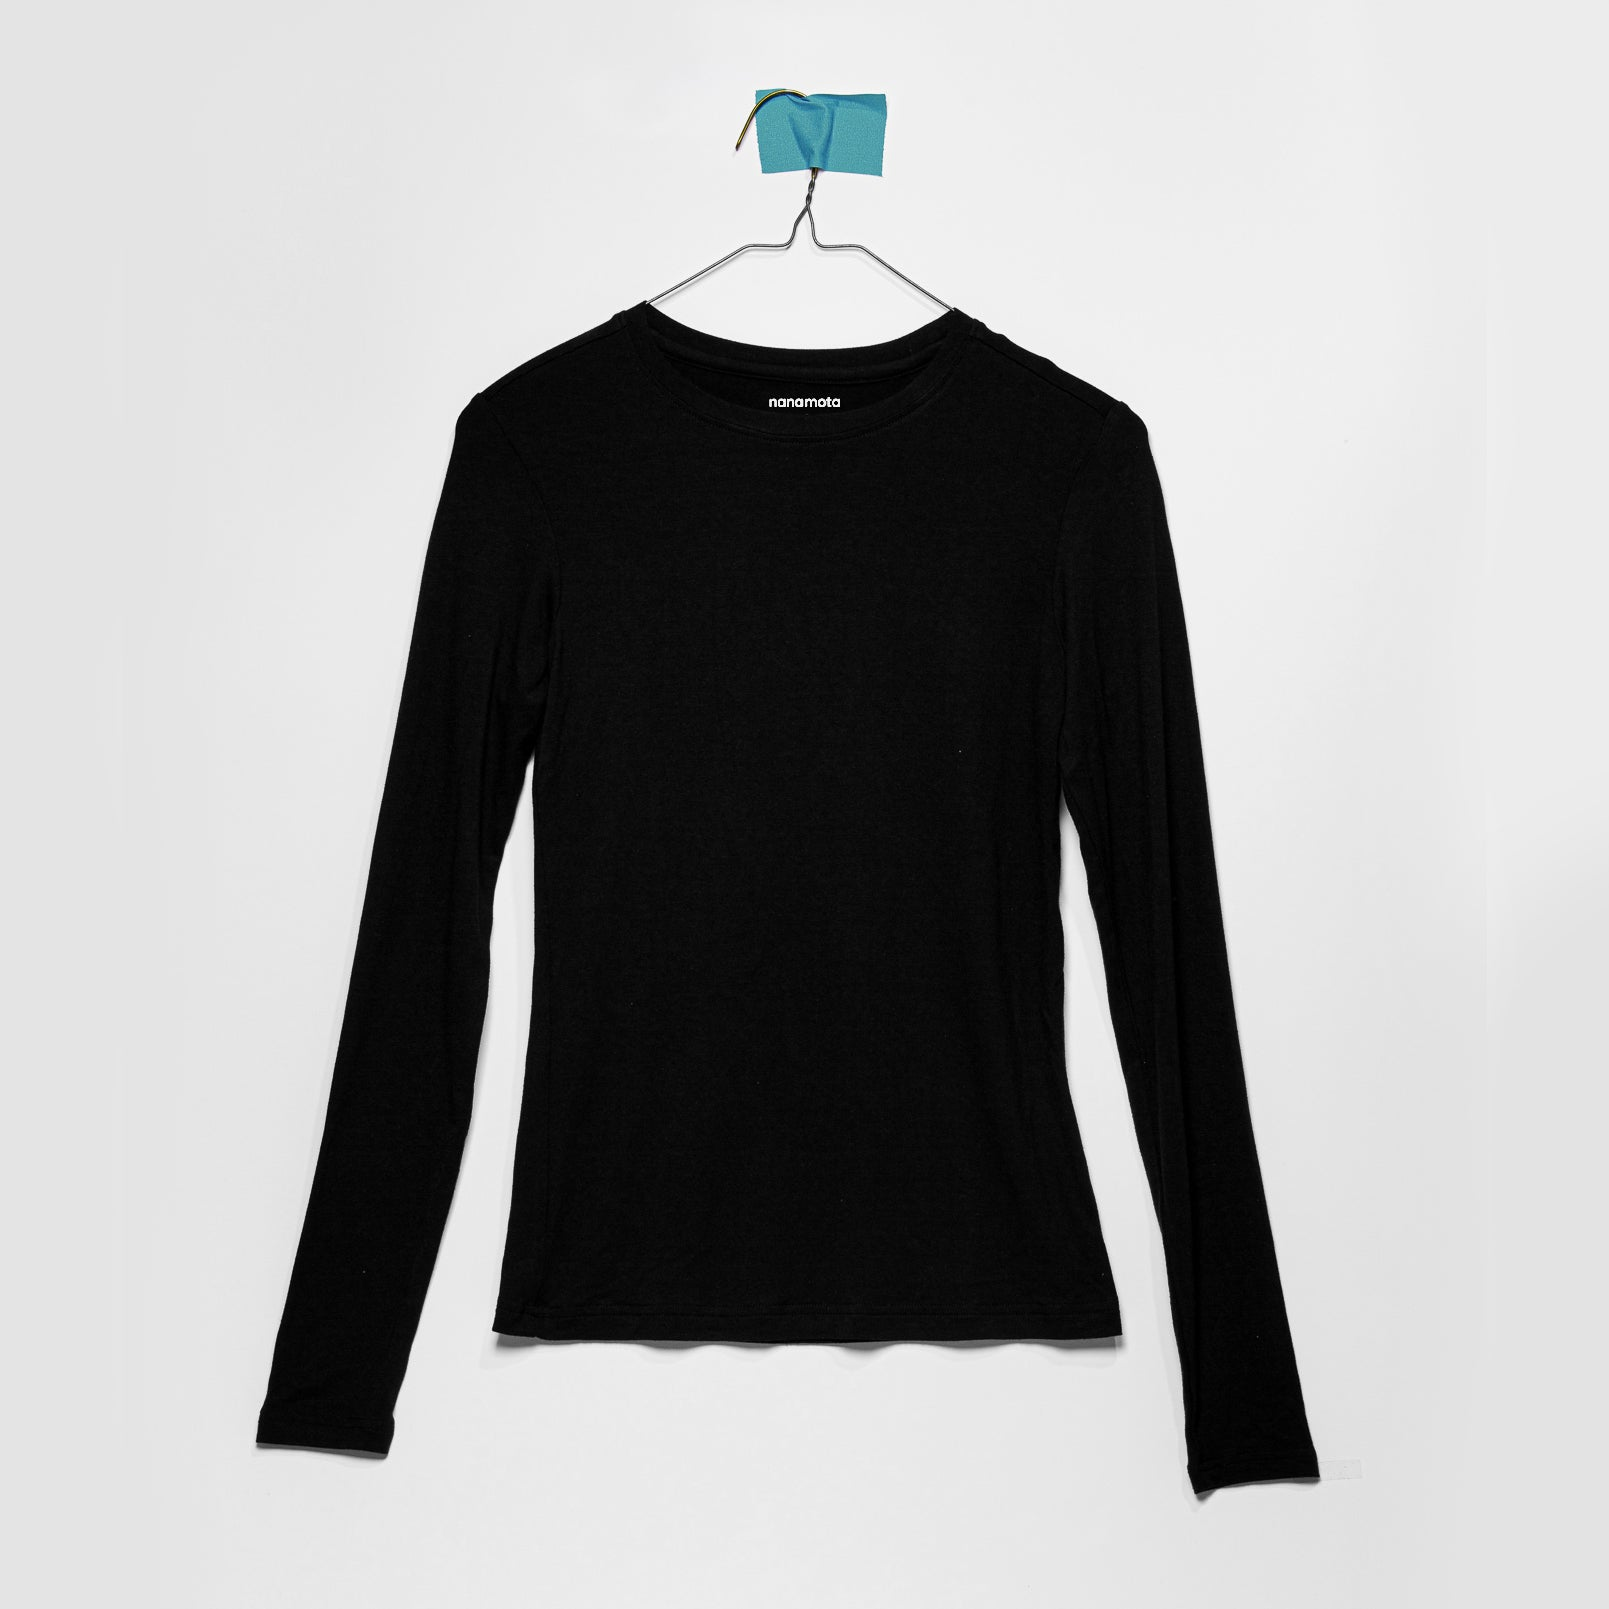 'THE SOFTEST TEE' WOMENS FITTED LONG-SLEEVE BLACK